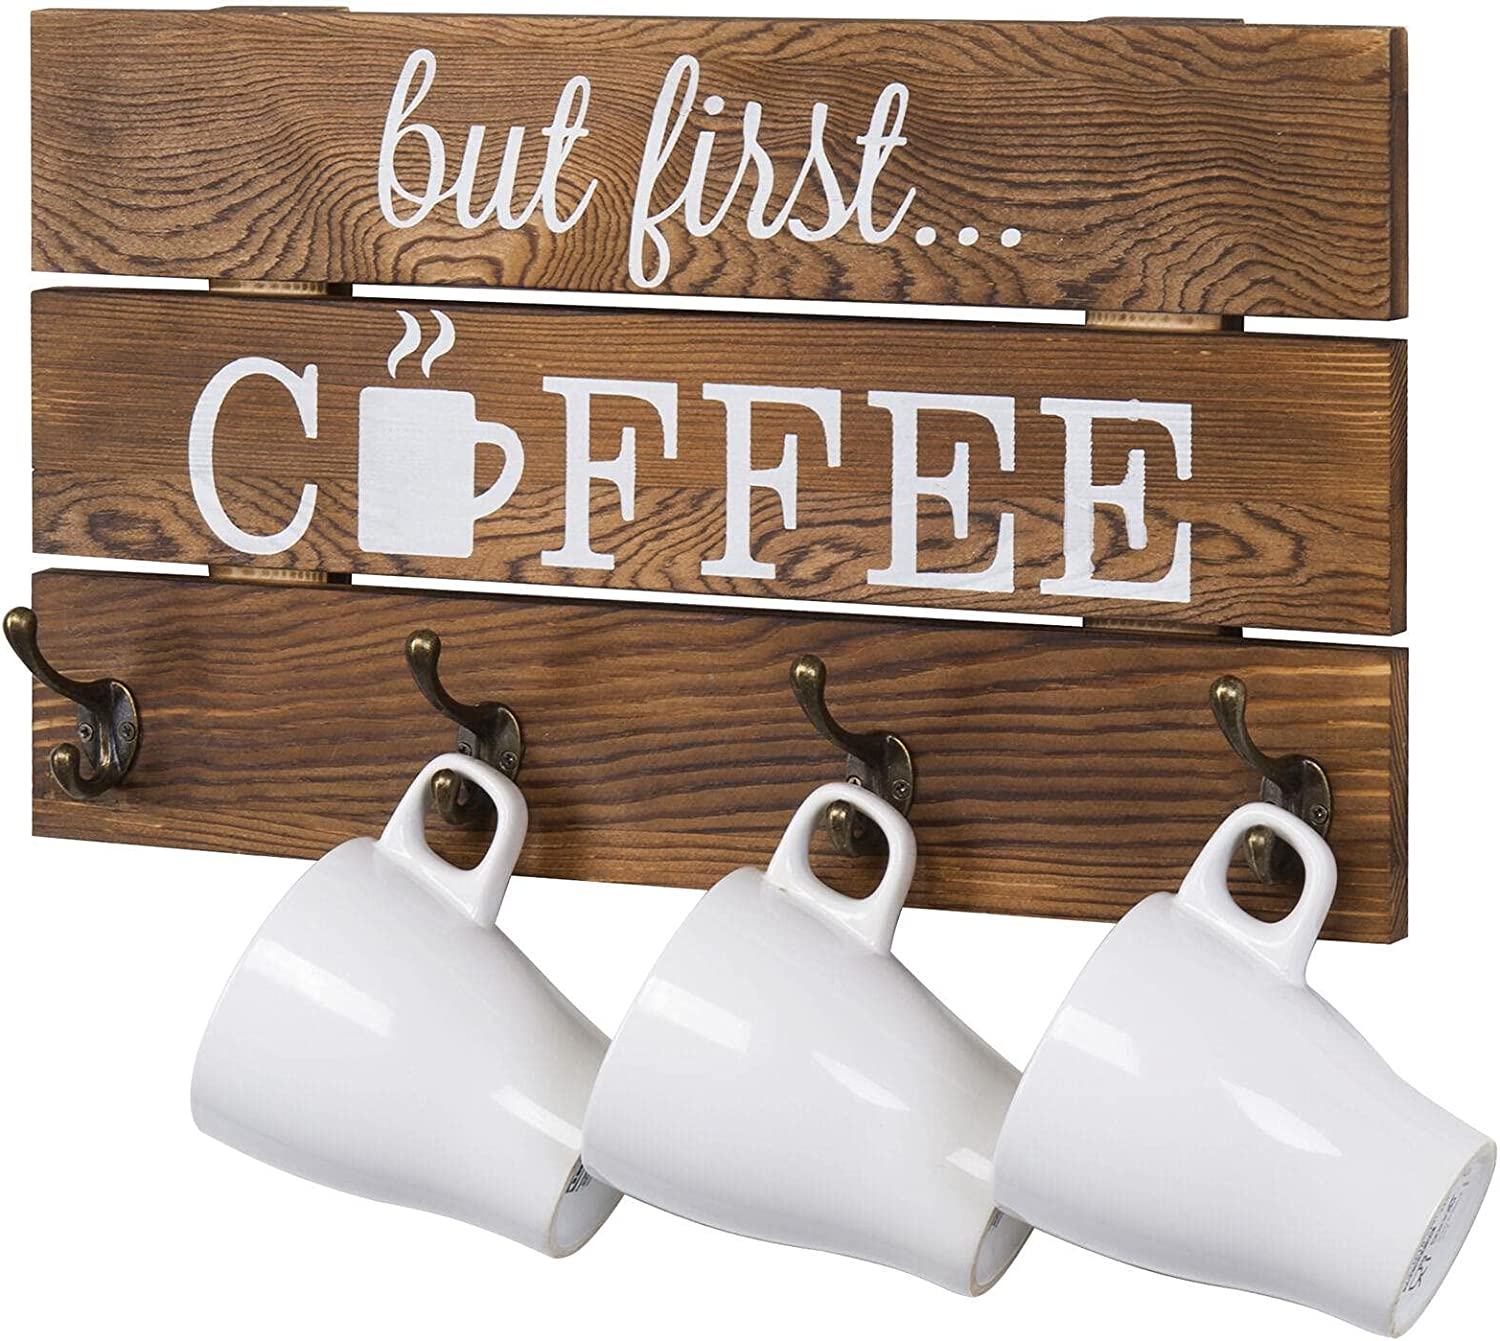 8 Hook Rustic Dark Tampa Mall Omaha Mall Brown Wood But Hold Coffee Mug Sign First and